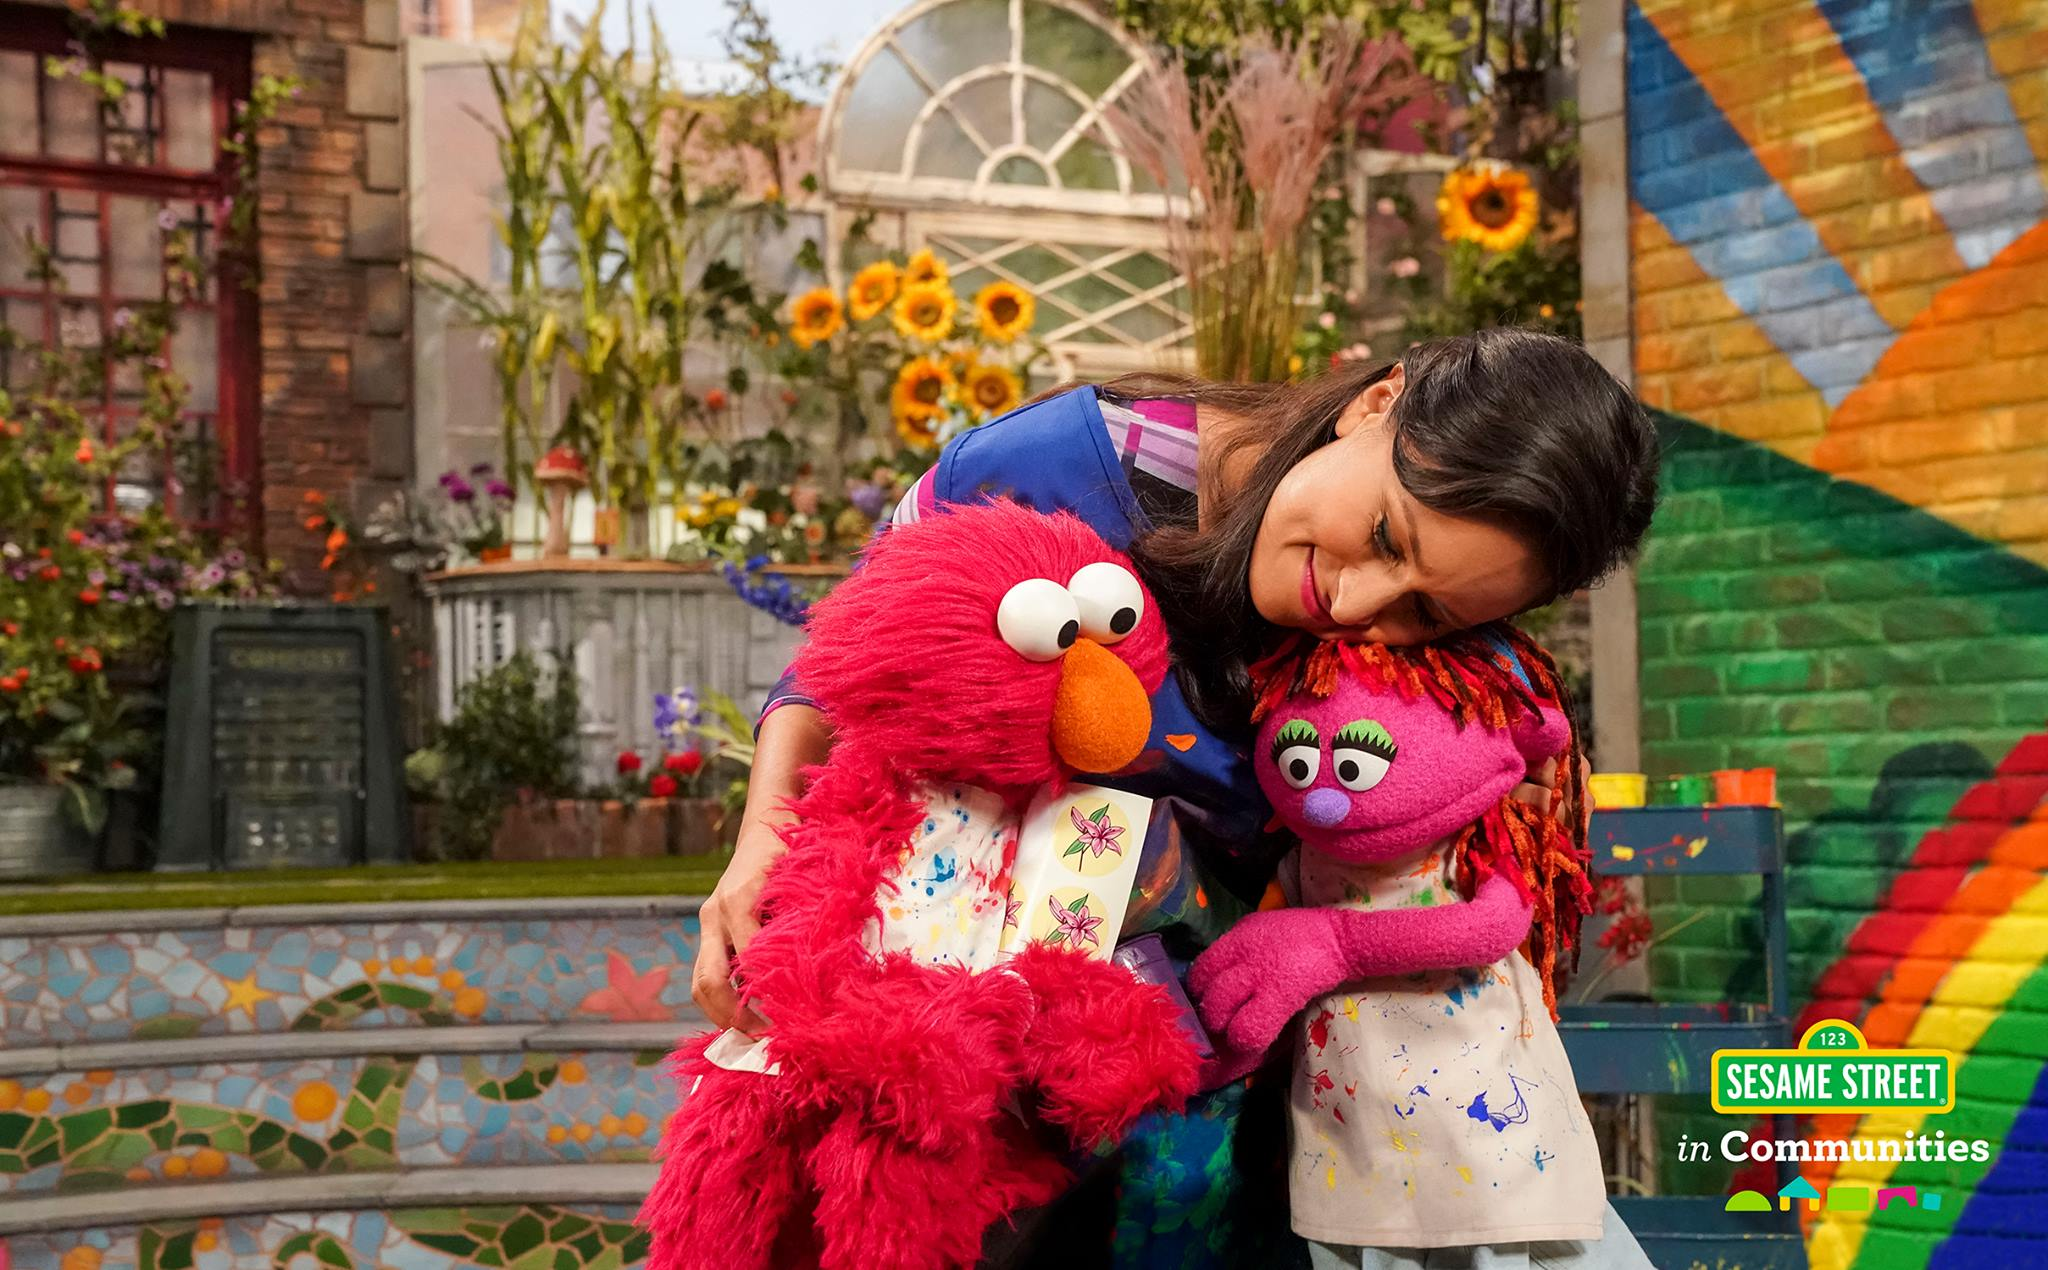 Sesame Street introduces Lily, the first muppet to experience homelessness